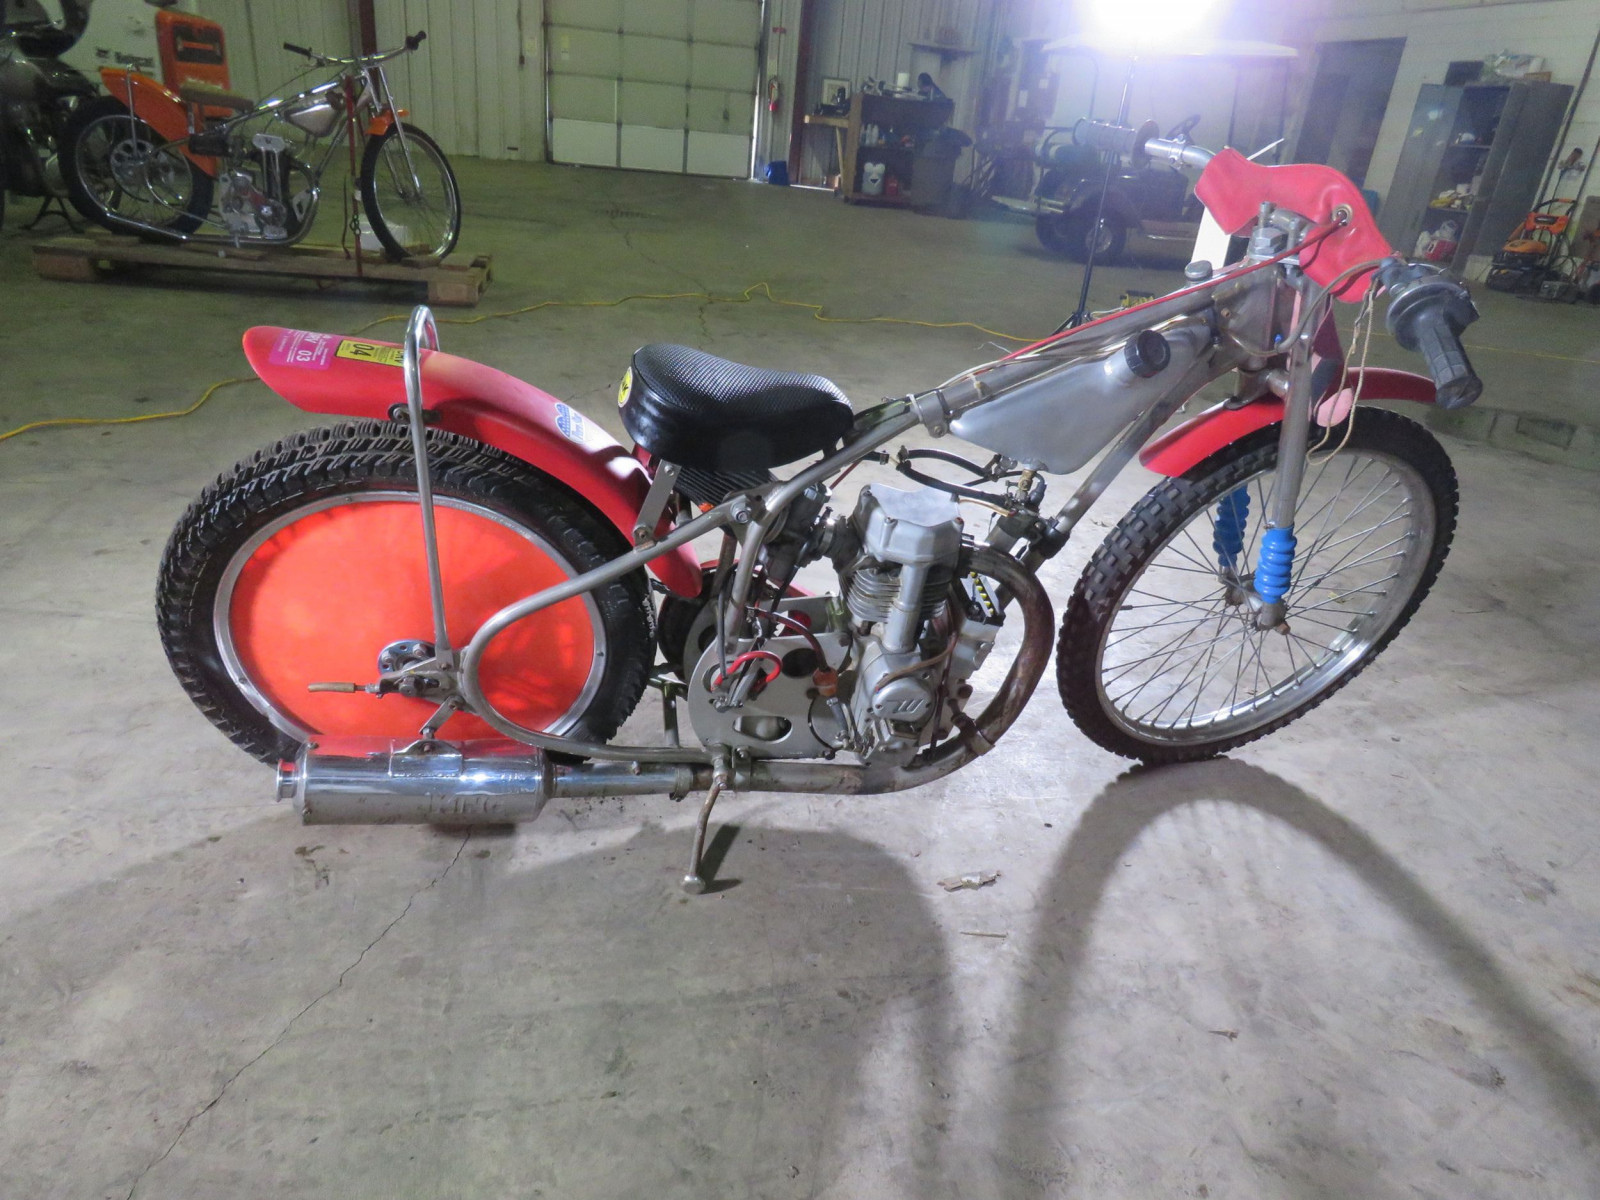 Speedway Racer Motorcycle - Image 4